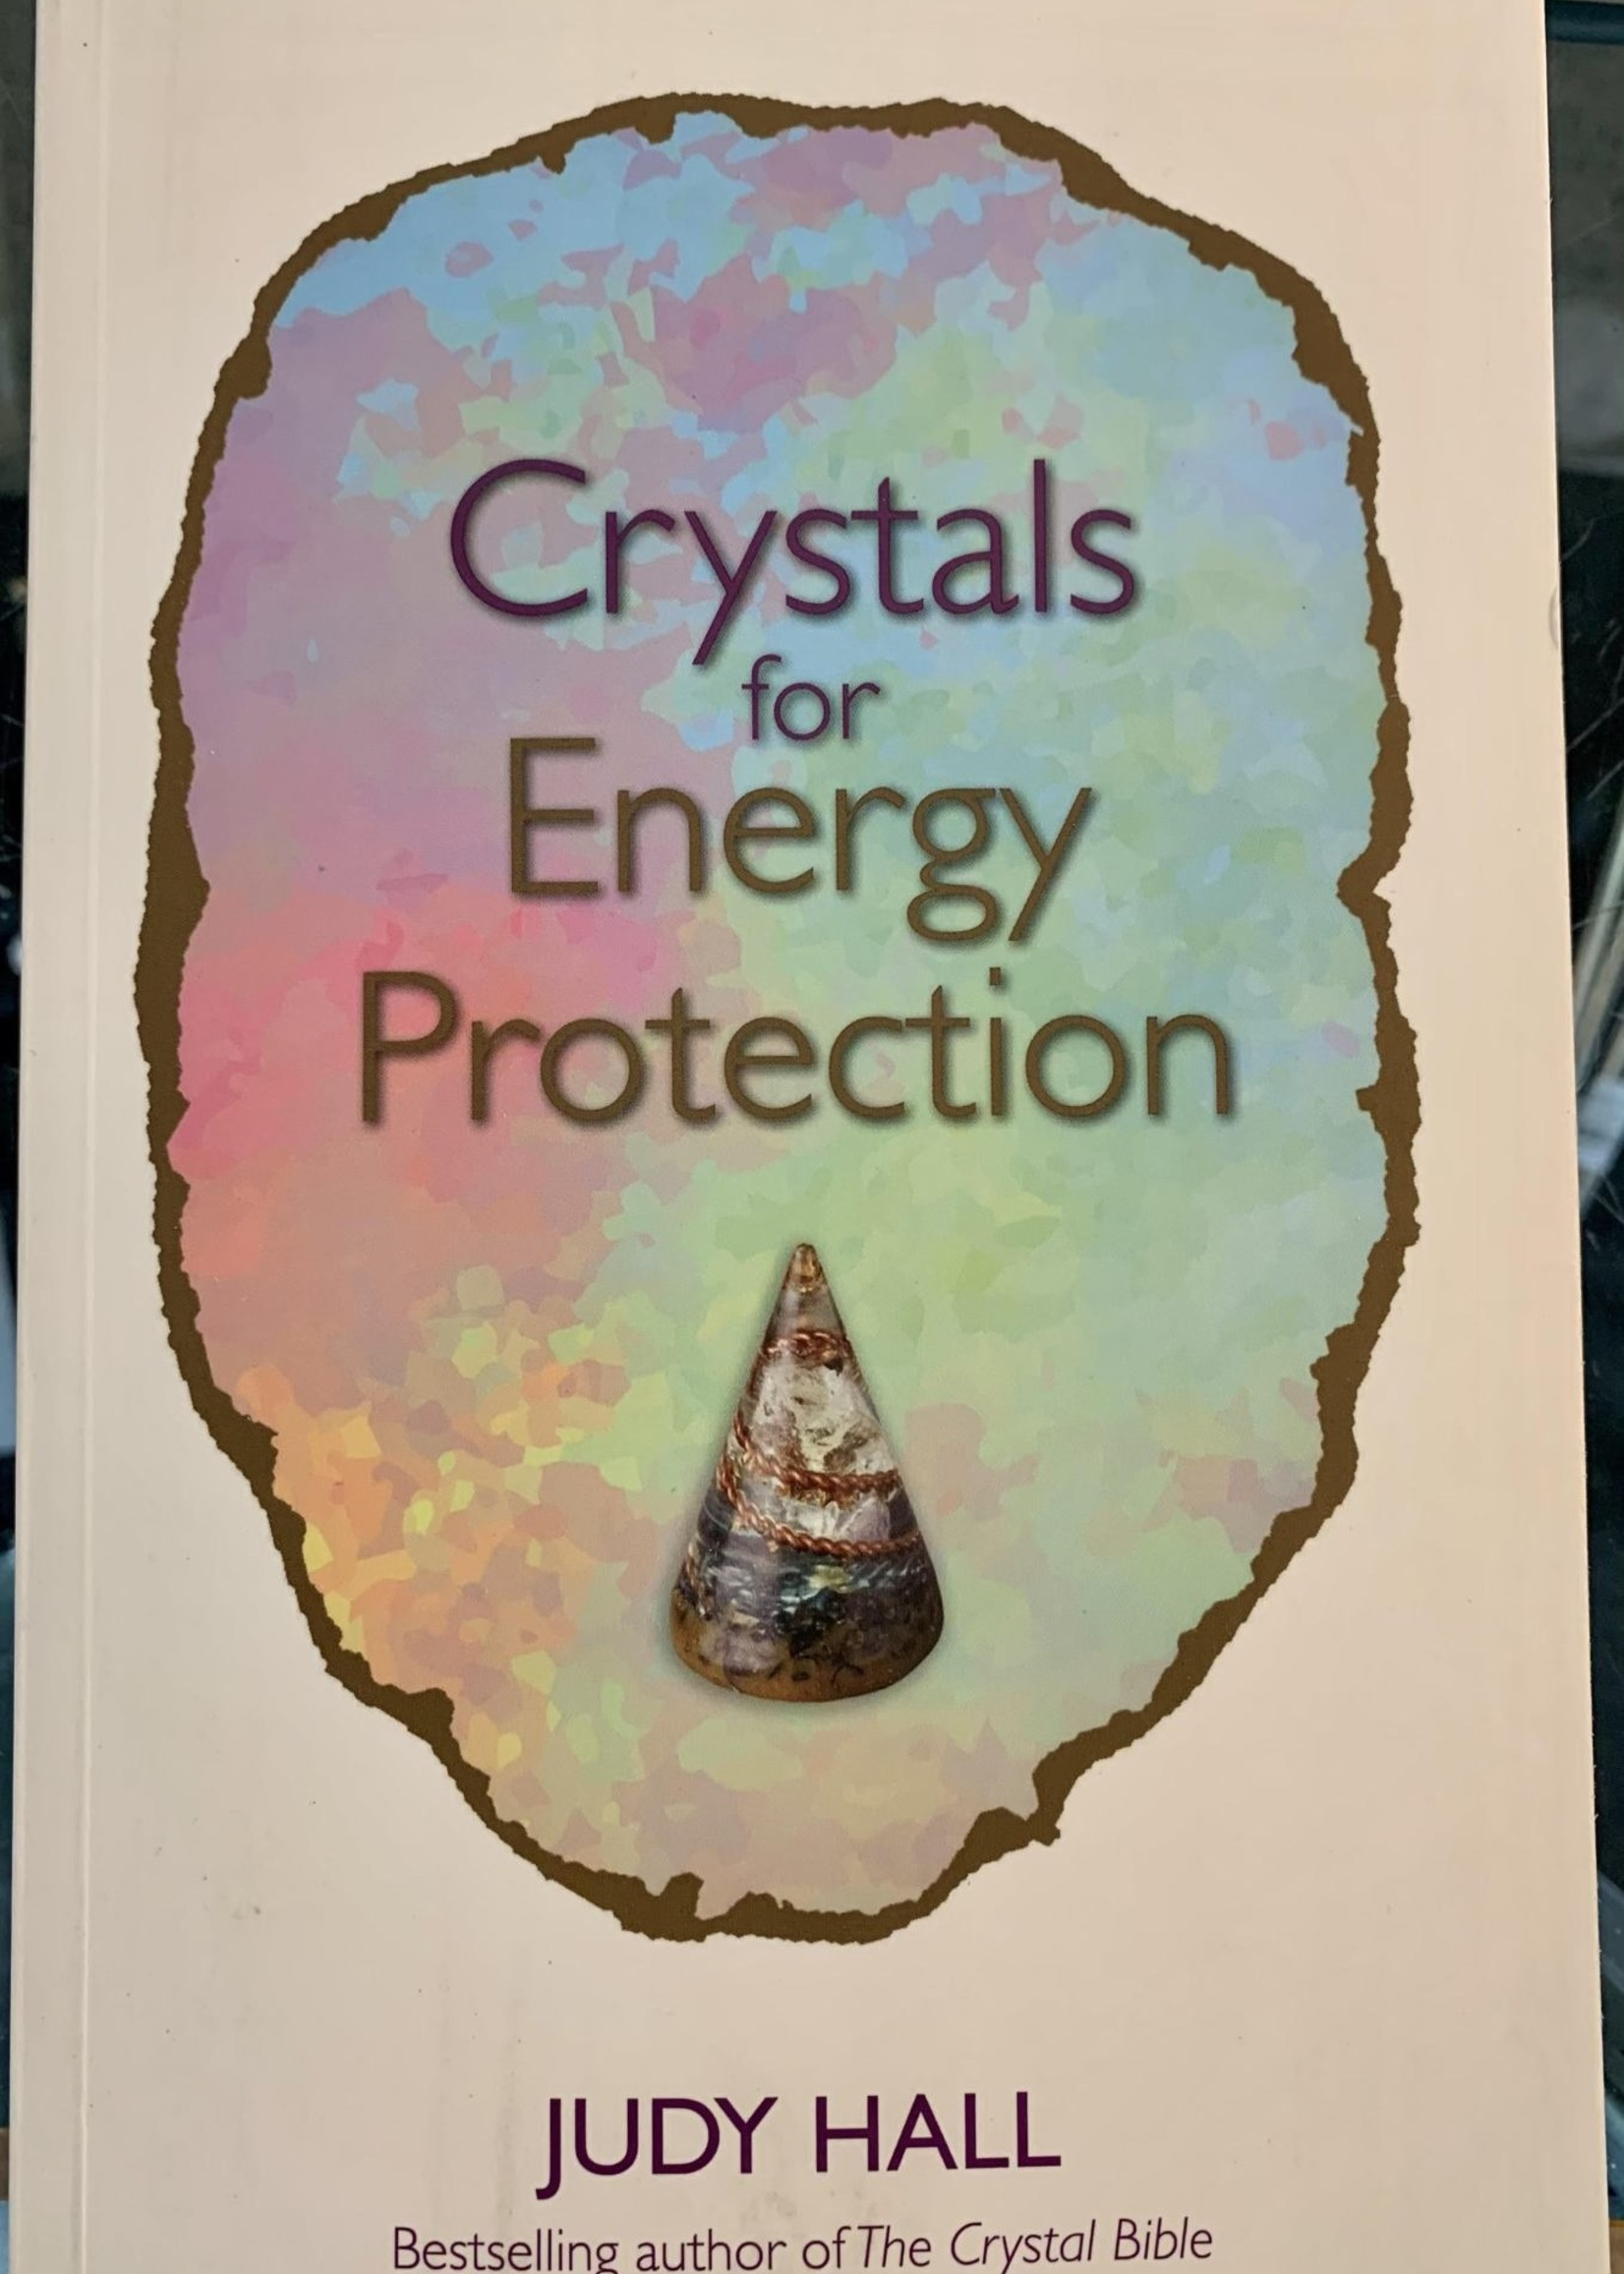 Crystals for Energy Protection - By JUDY HALL